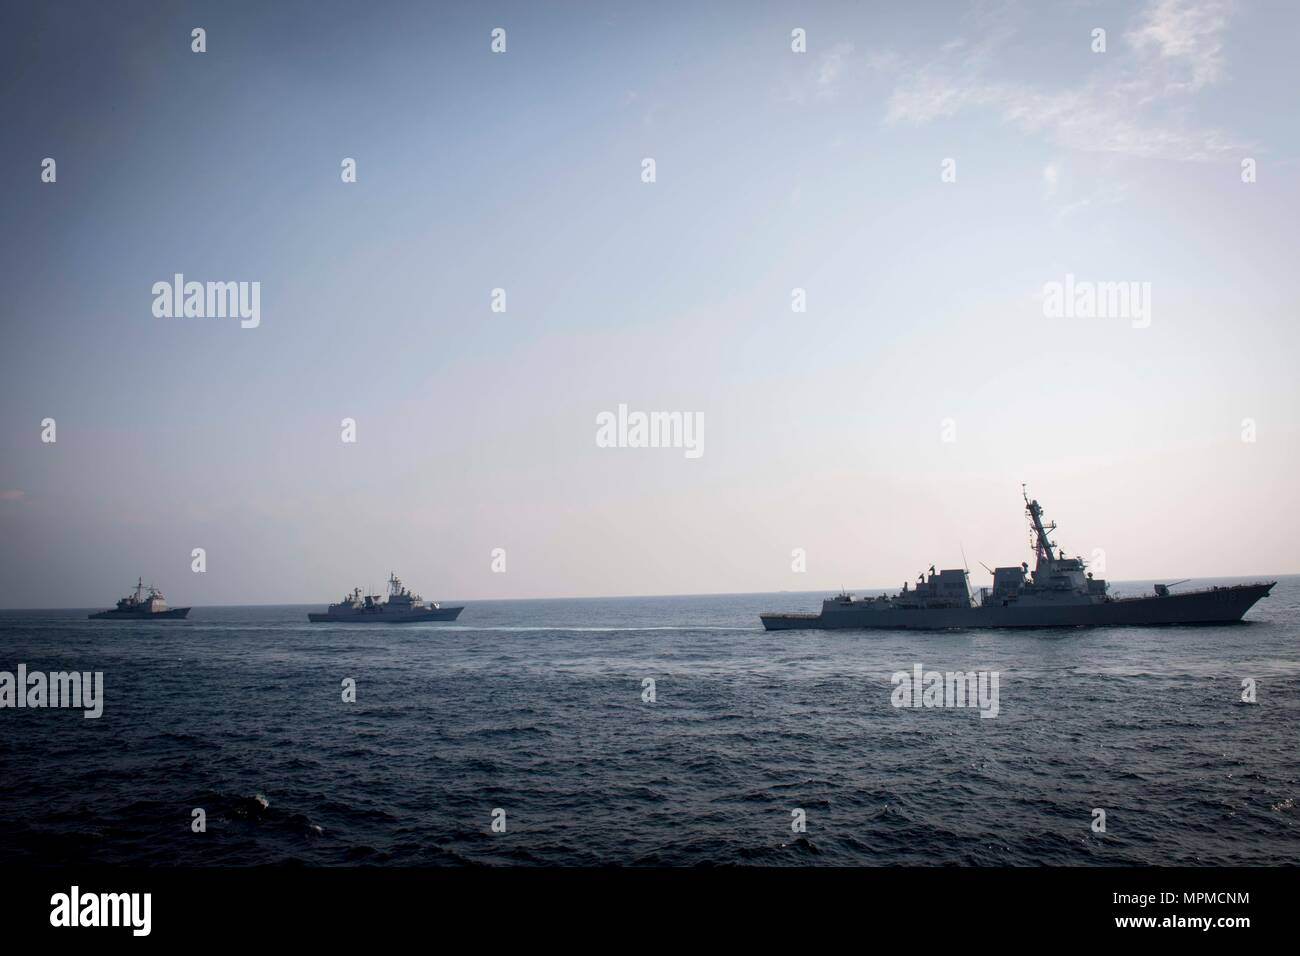 WATERS EAST OF THE KOREAN PENINSULA (March 22, 2017) The Arleigh Burke-class guided-missile destroyer USS Wayne E. Meyer (DDG 108), the Republic of Korea Navy destroyer ROKS Gwanggaeto the Great (DDH 971), and USS Mitscher (DDG 57) steam behind USS Stethem (DDG 63) as the ships participate in surface maneuvers with several other U.S. and Republic of Korea Navy ships and submarines during Foal Eagle (FE) 17. FE 17 is a series of annual training events designed to increase readiness to defend the ROK, protect the region, and maintain stability in the Korean Peninsula. (U.S. Navy photo by Mass Co - Stock Image